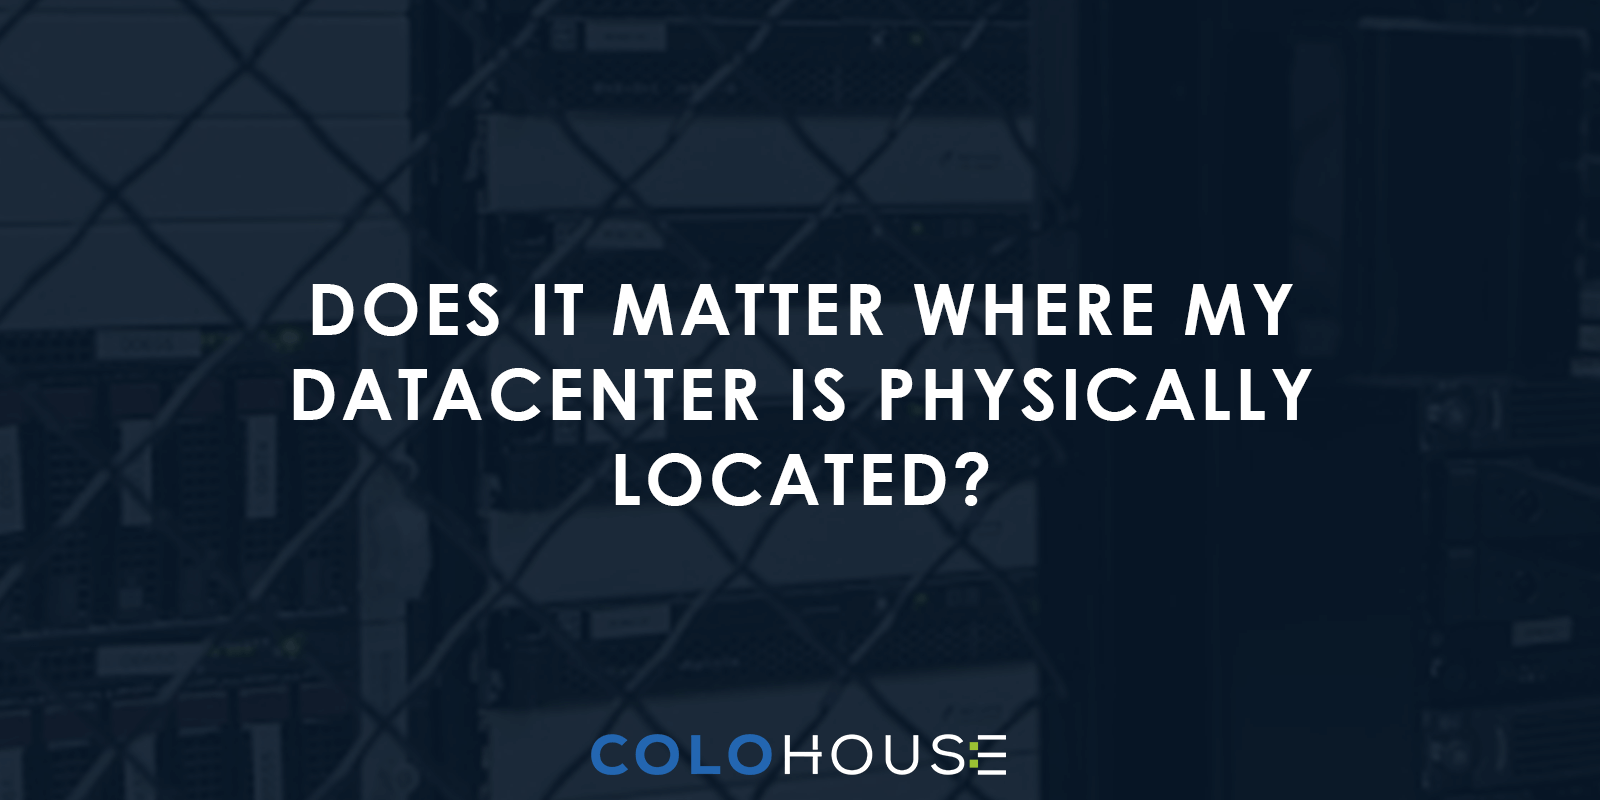 Blog header: Does it matter where my datacenter is physical located?